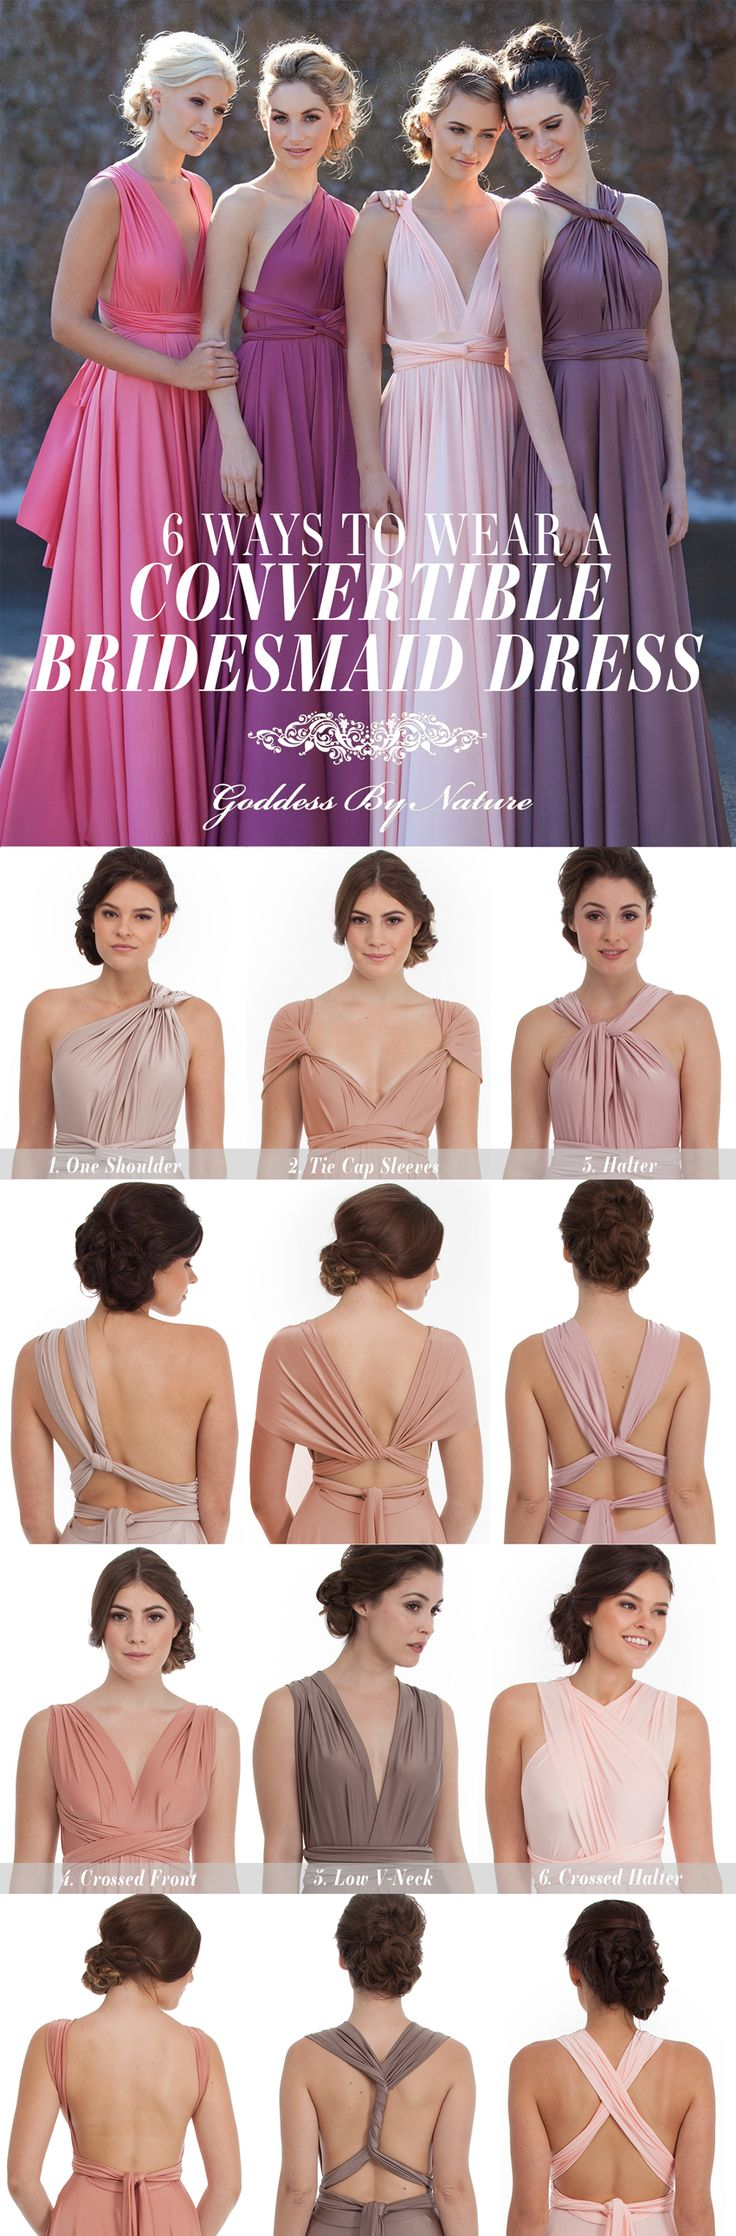 6 Ways To Wear A Convertible Dress | The Goddess By Nature Signature Multiway Dress Collection is perfect for your bridesmaids! #goddessbynature #wedding #bridesmaids #dresses #convertibledress #weddingideas #multiwaydress #brideideas #weddingdress